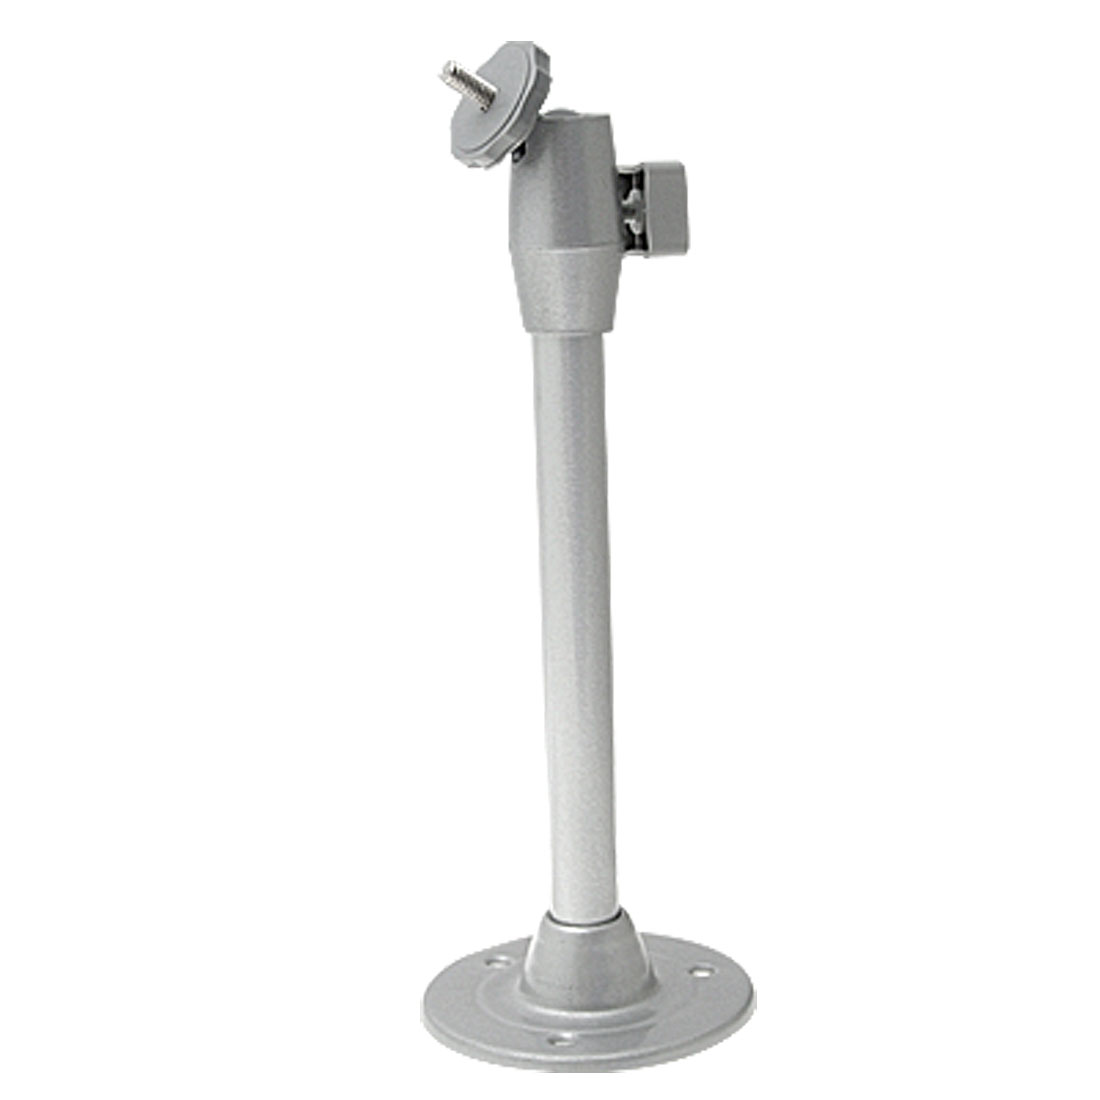 Rotatable Adjustable Ceiling Wall Mount Stand Bracket Alloy for CCTV Camera